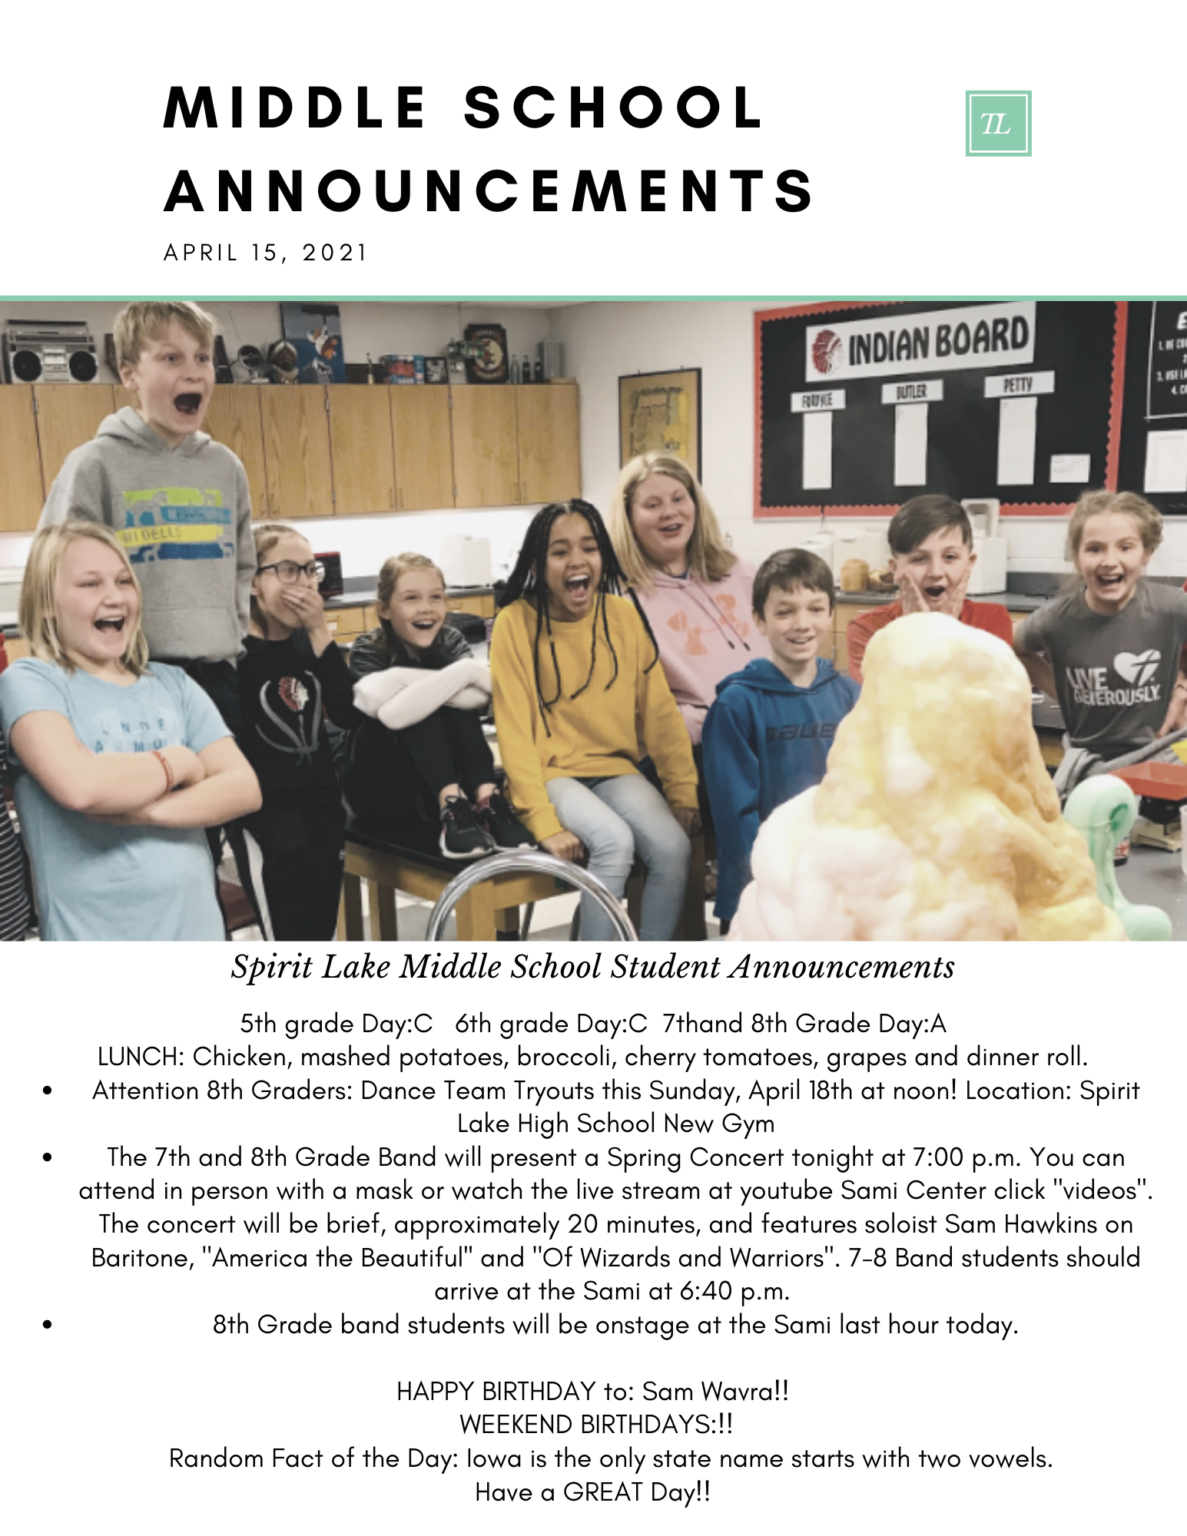 MS Announcements (28)